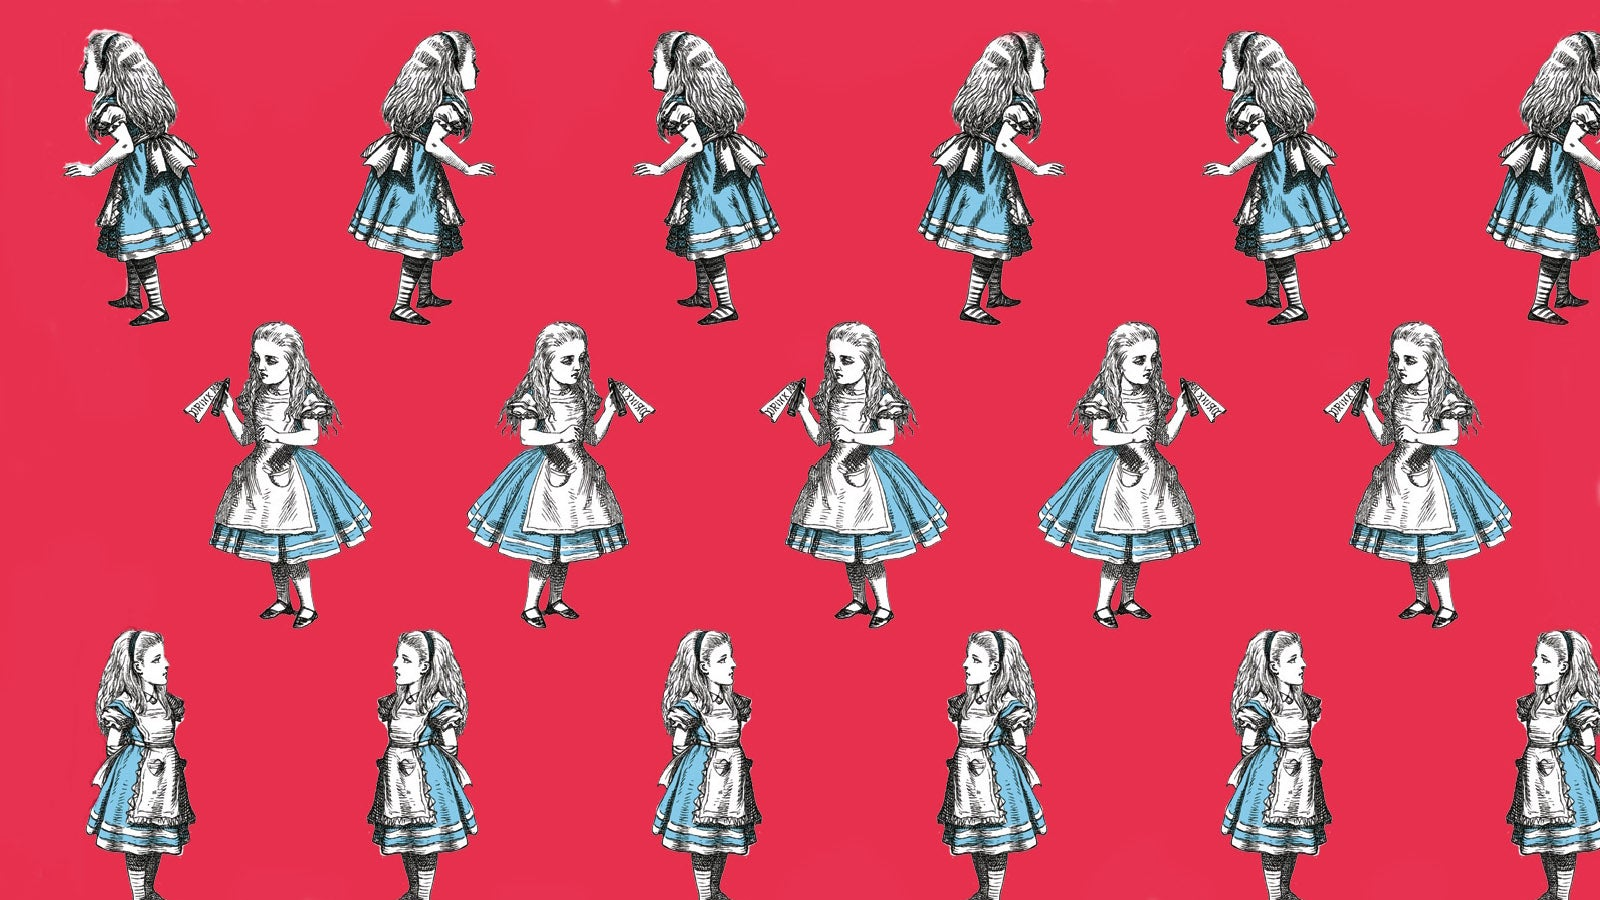 Alice in Wonderland illustrations on a red background